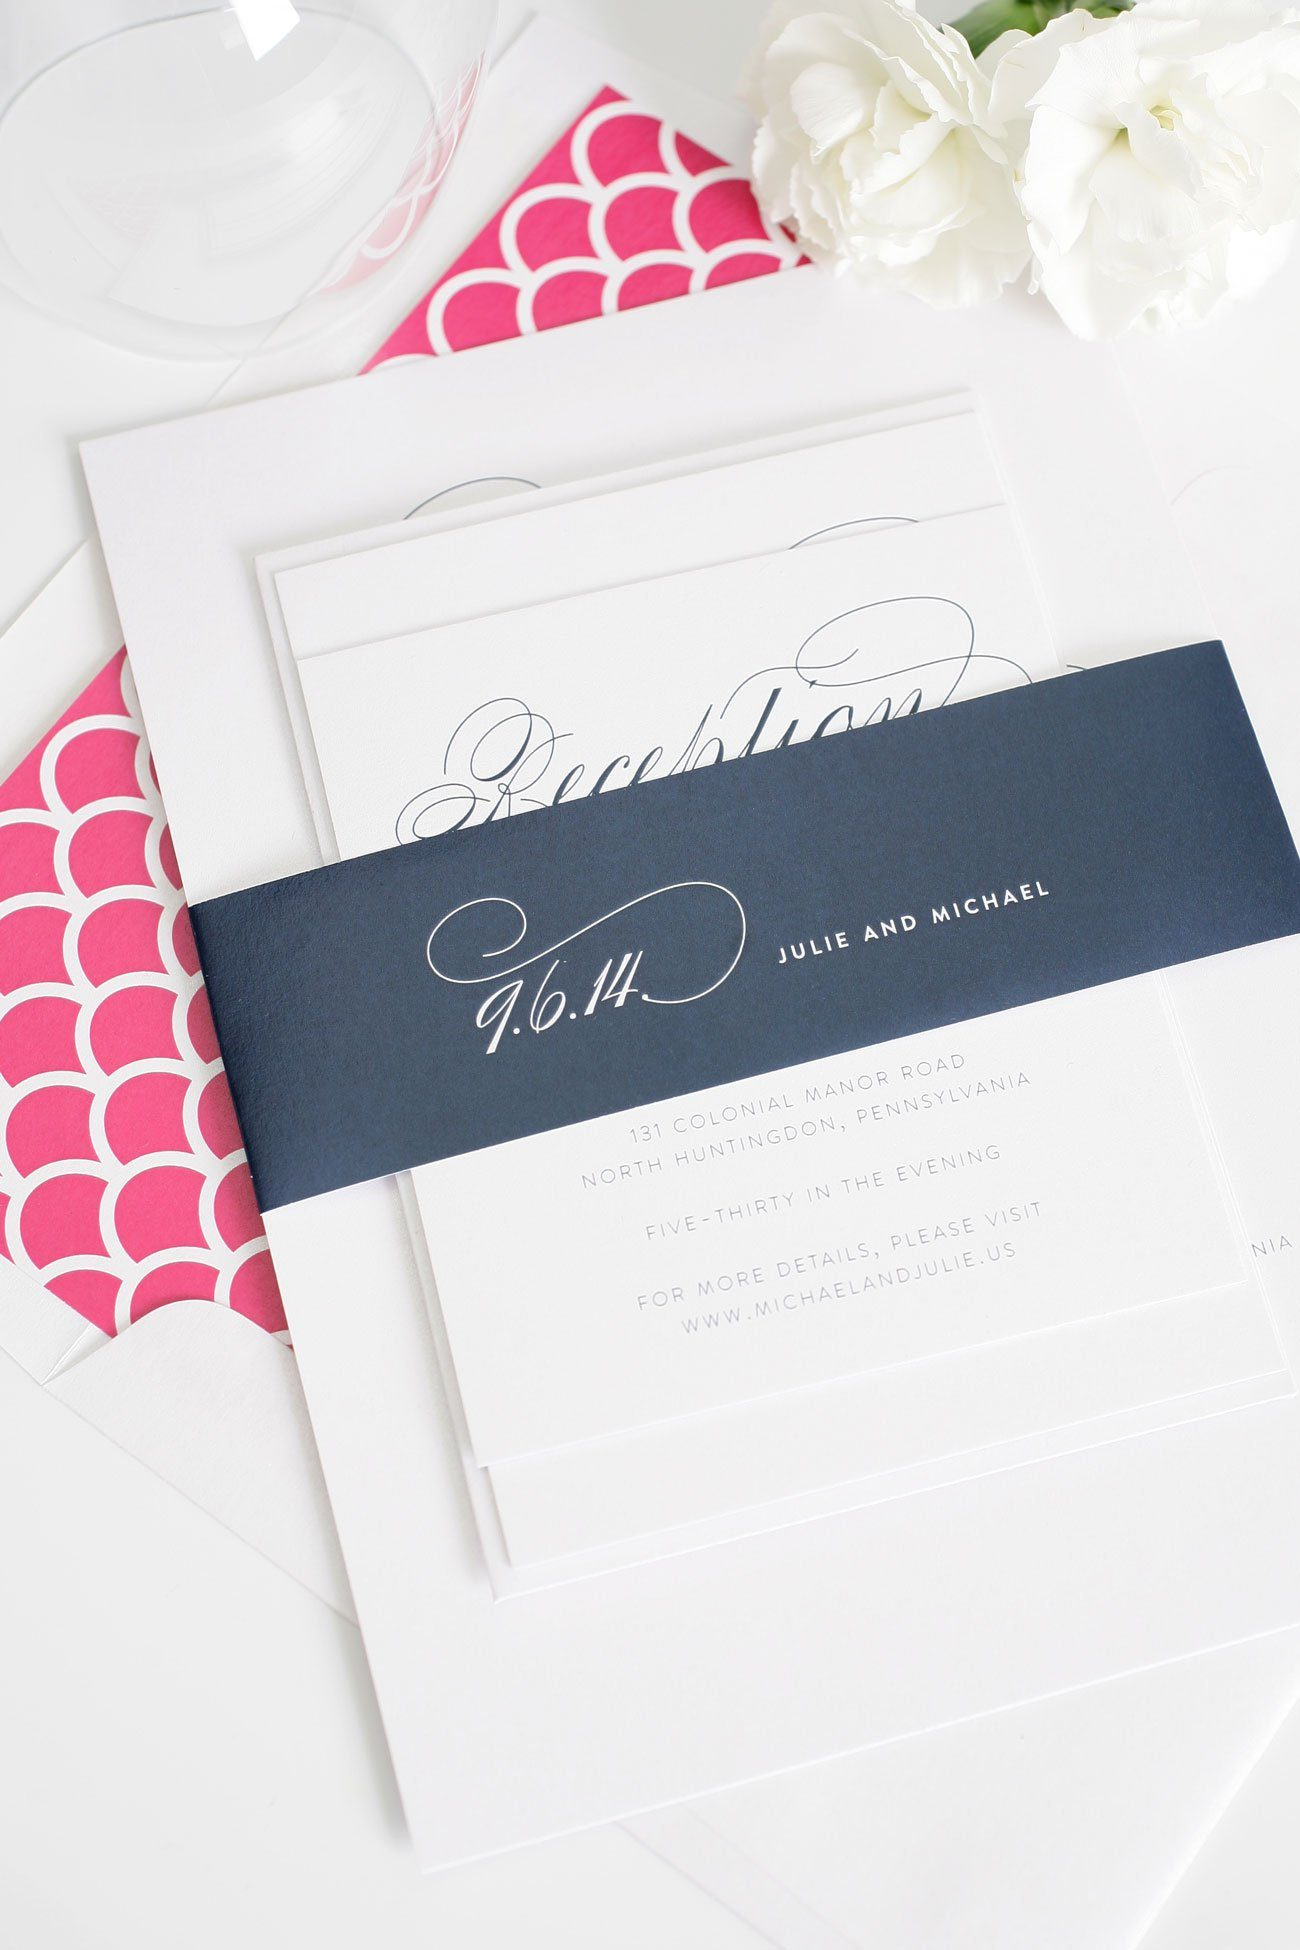 Script wedding invitations in pink and blue